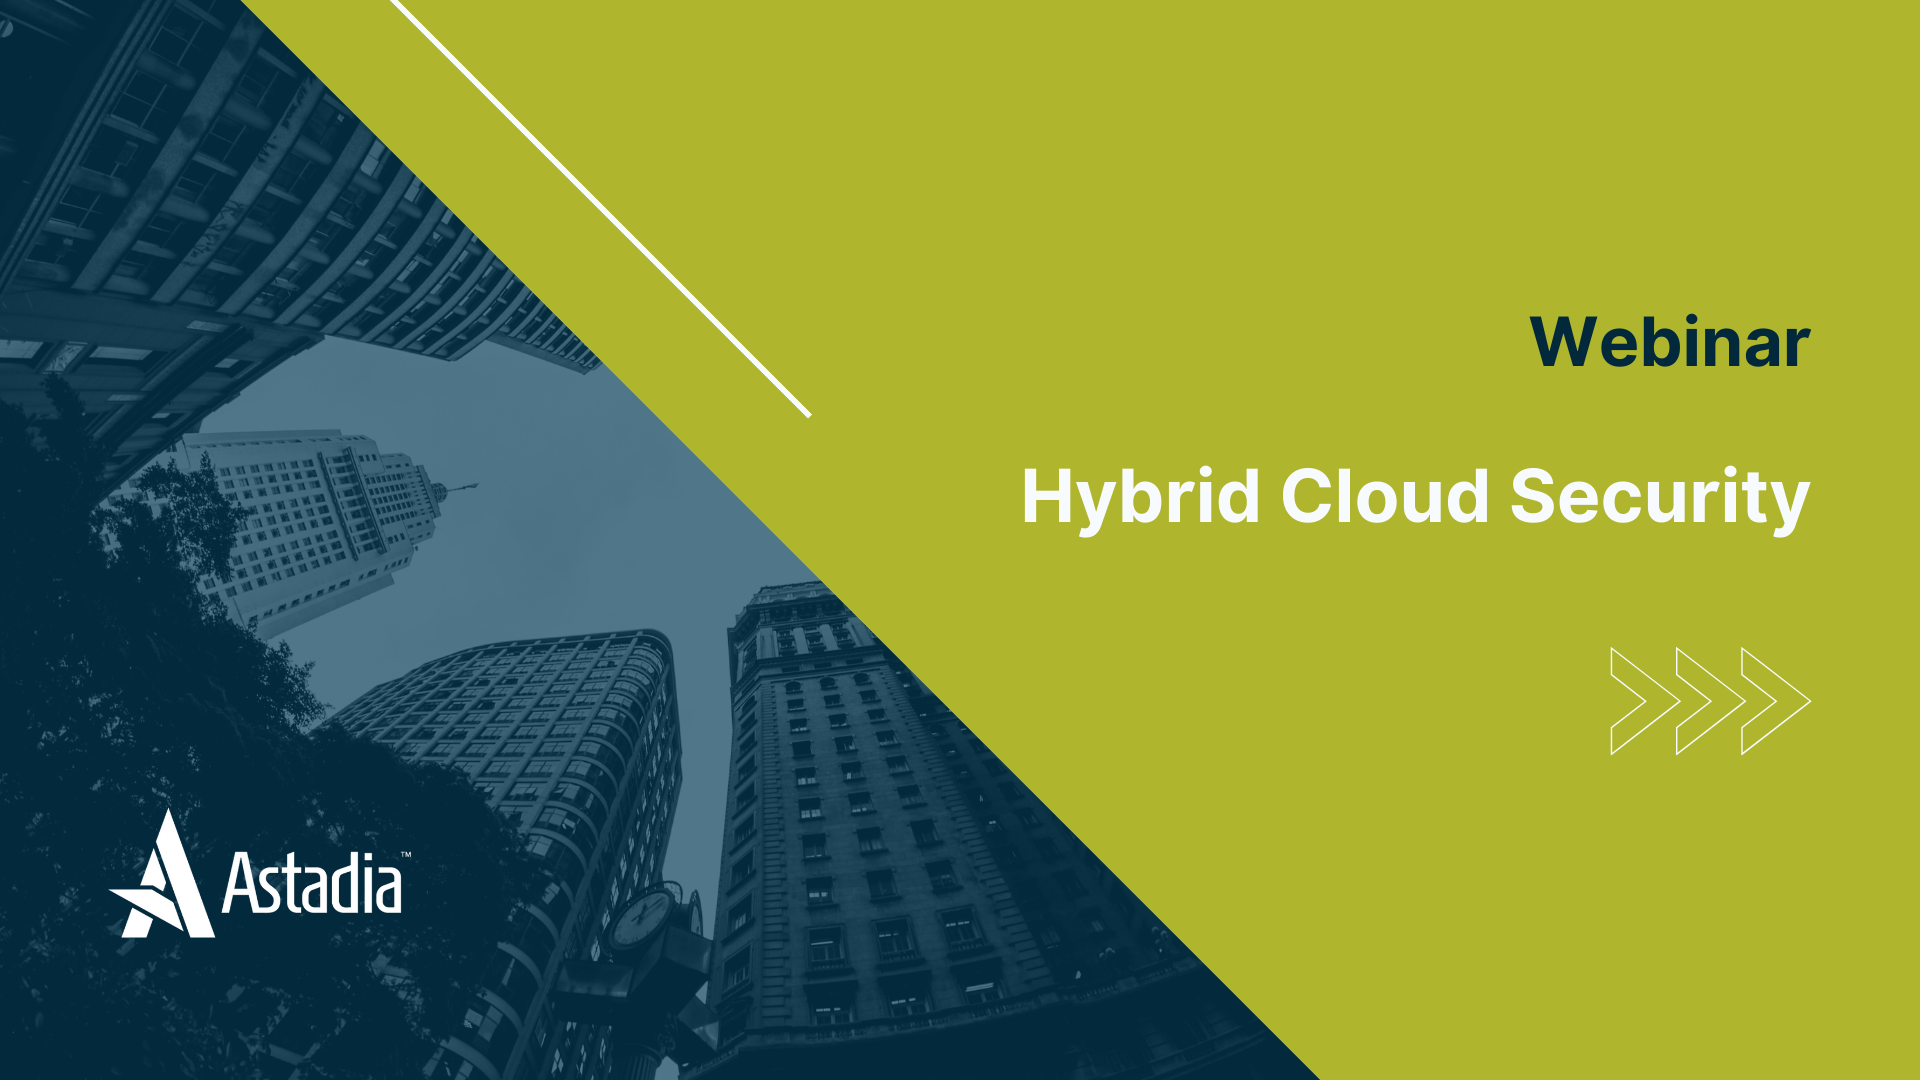 Hybrid Cloud Security: Are You At Risk?